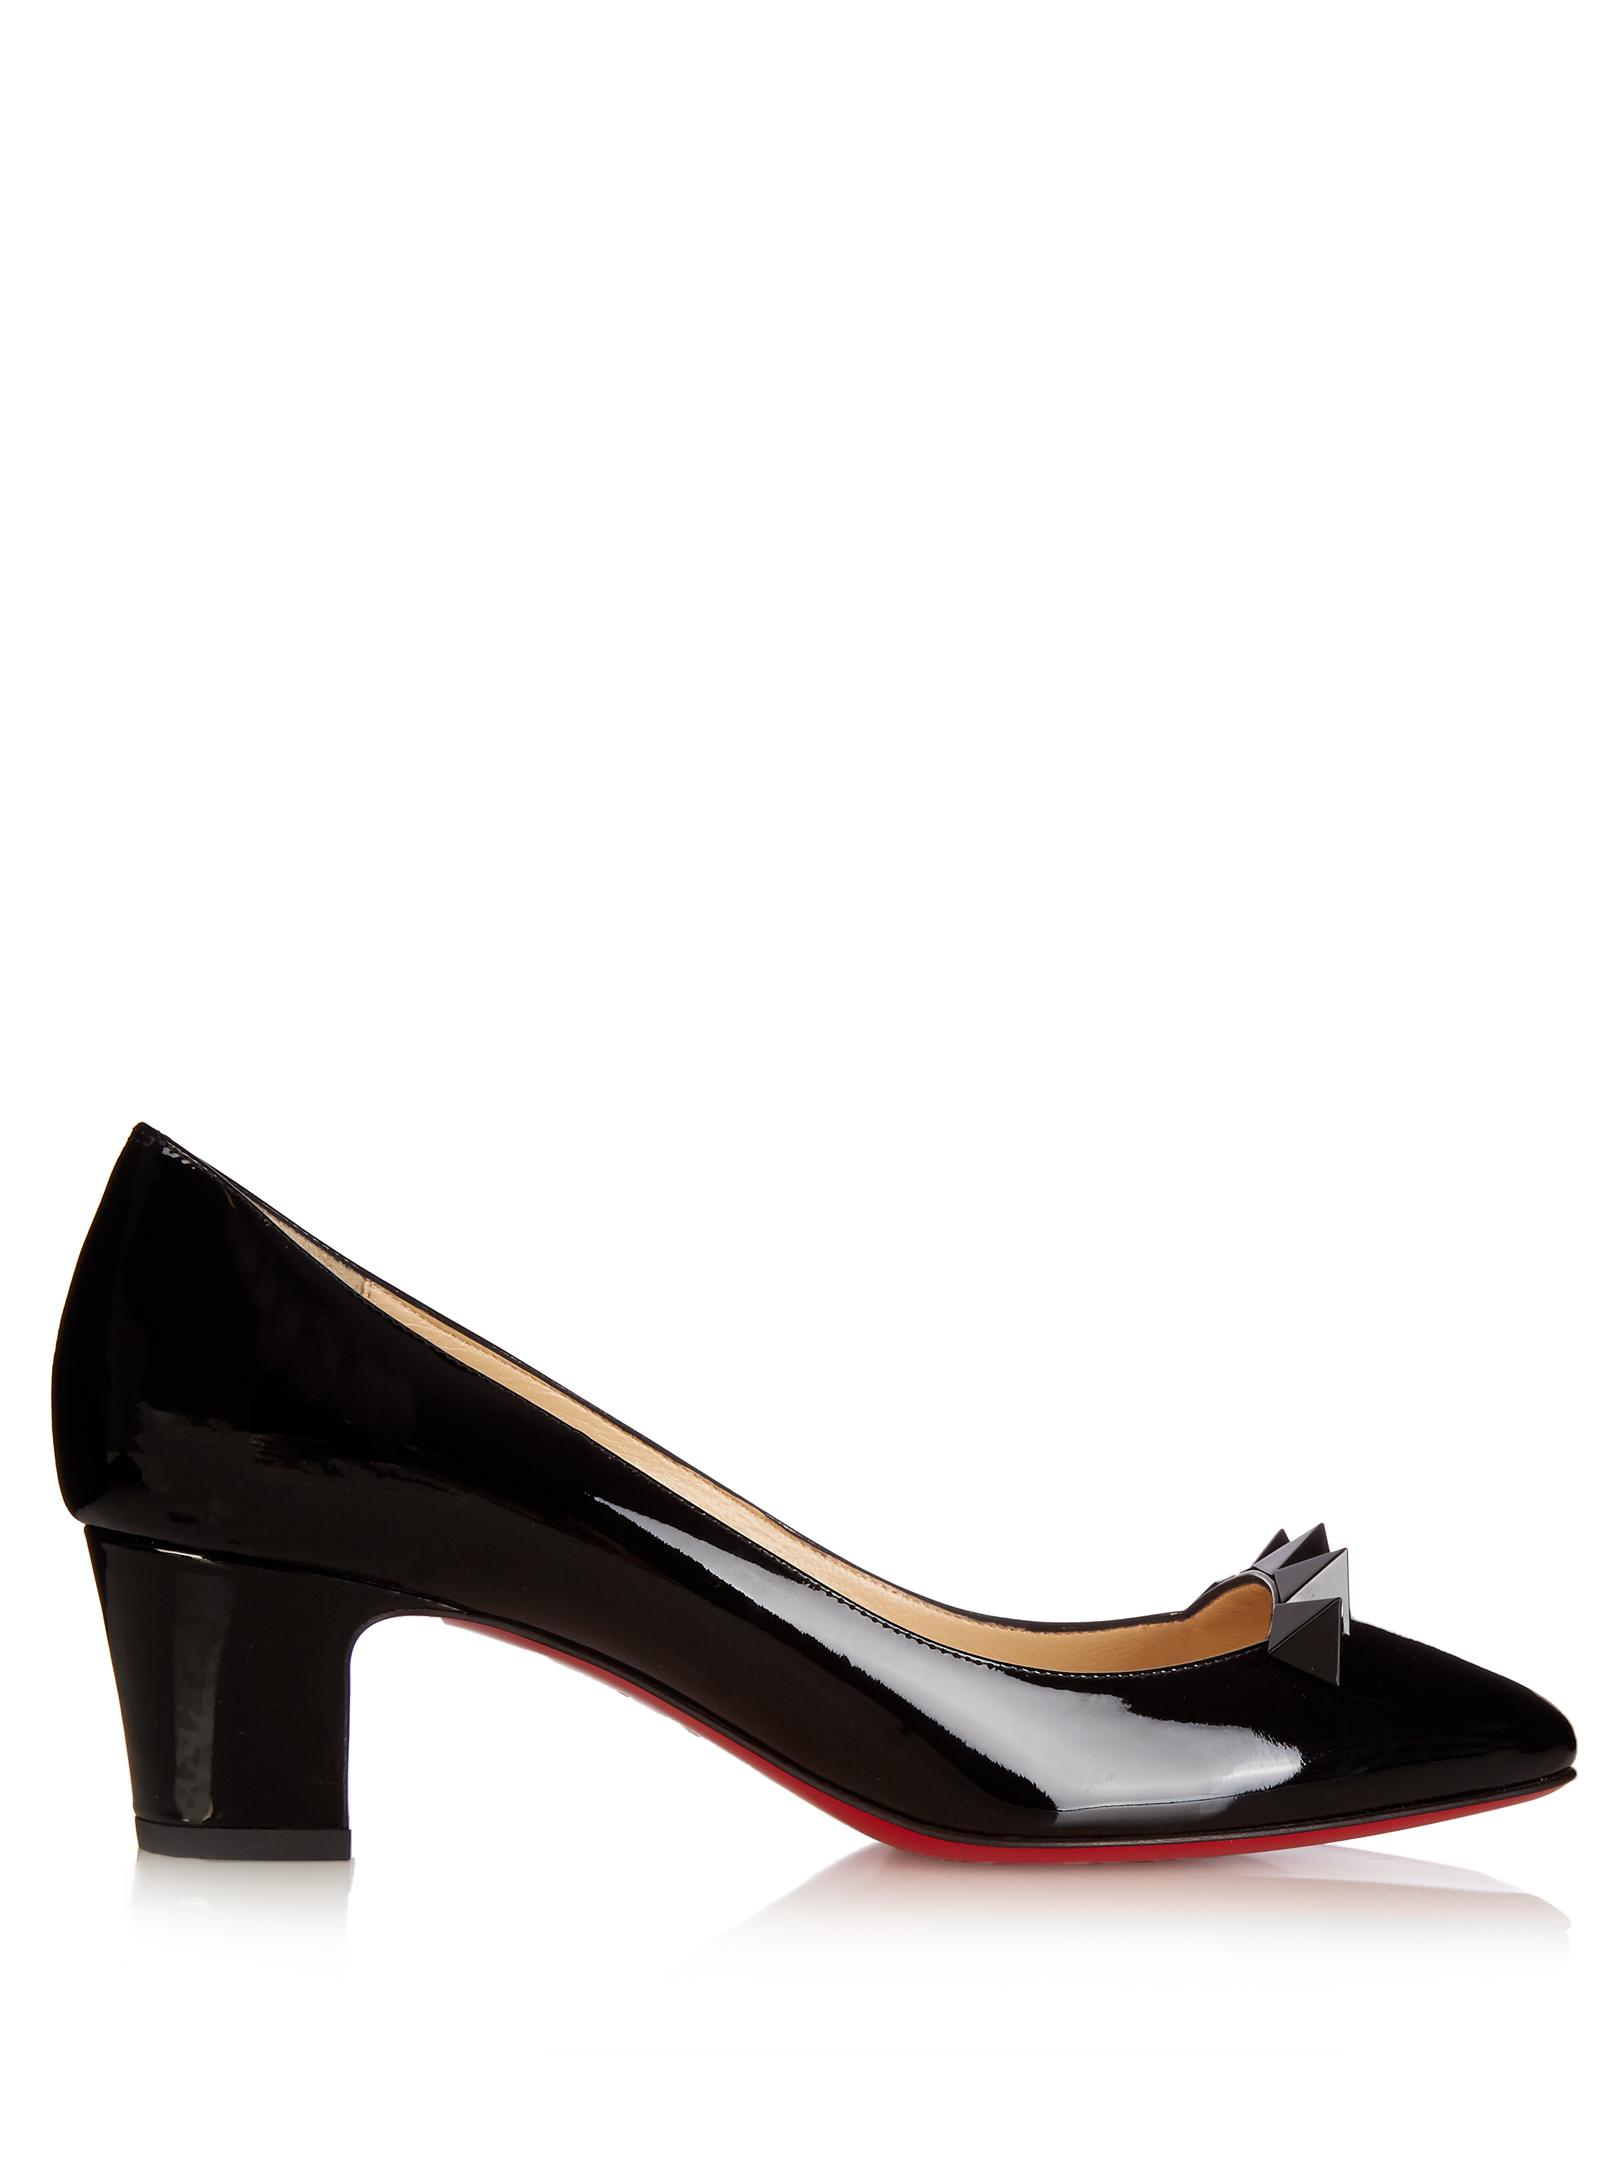 christian louboutin 45mm black